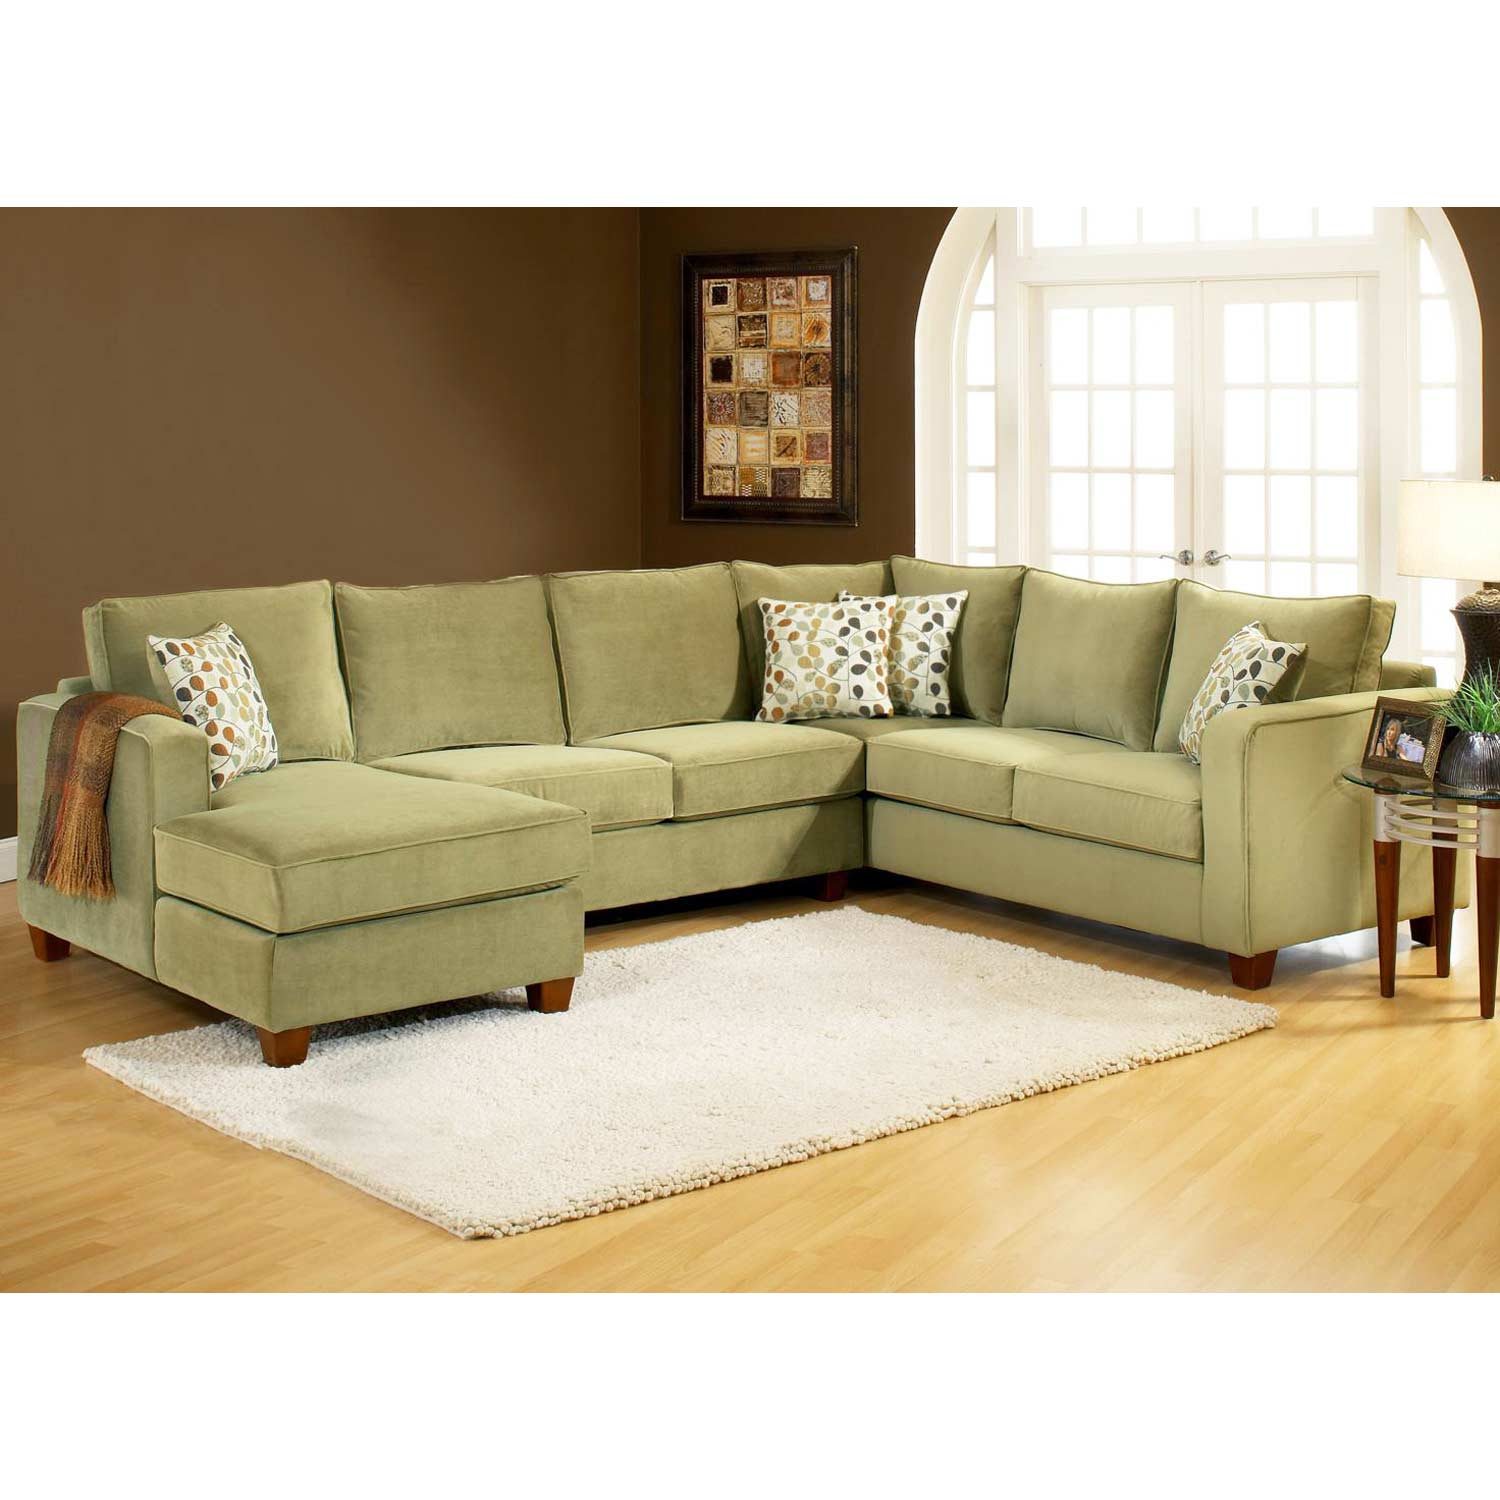 Baileys Sectional Couches: Bailey 3-Piece Chaise Sectional Sofa